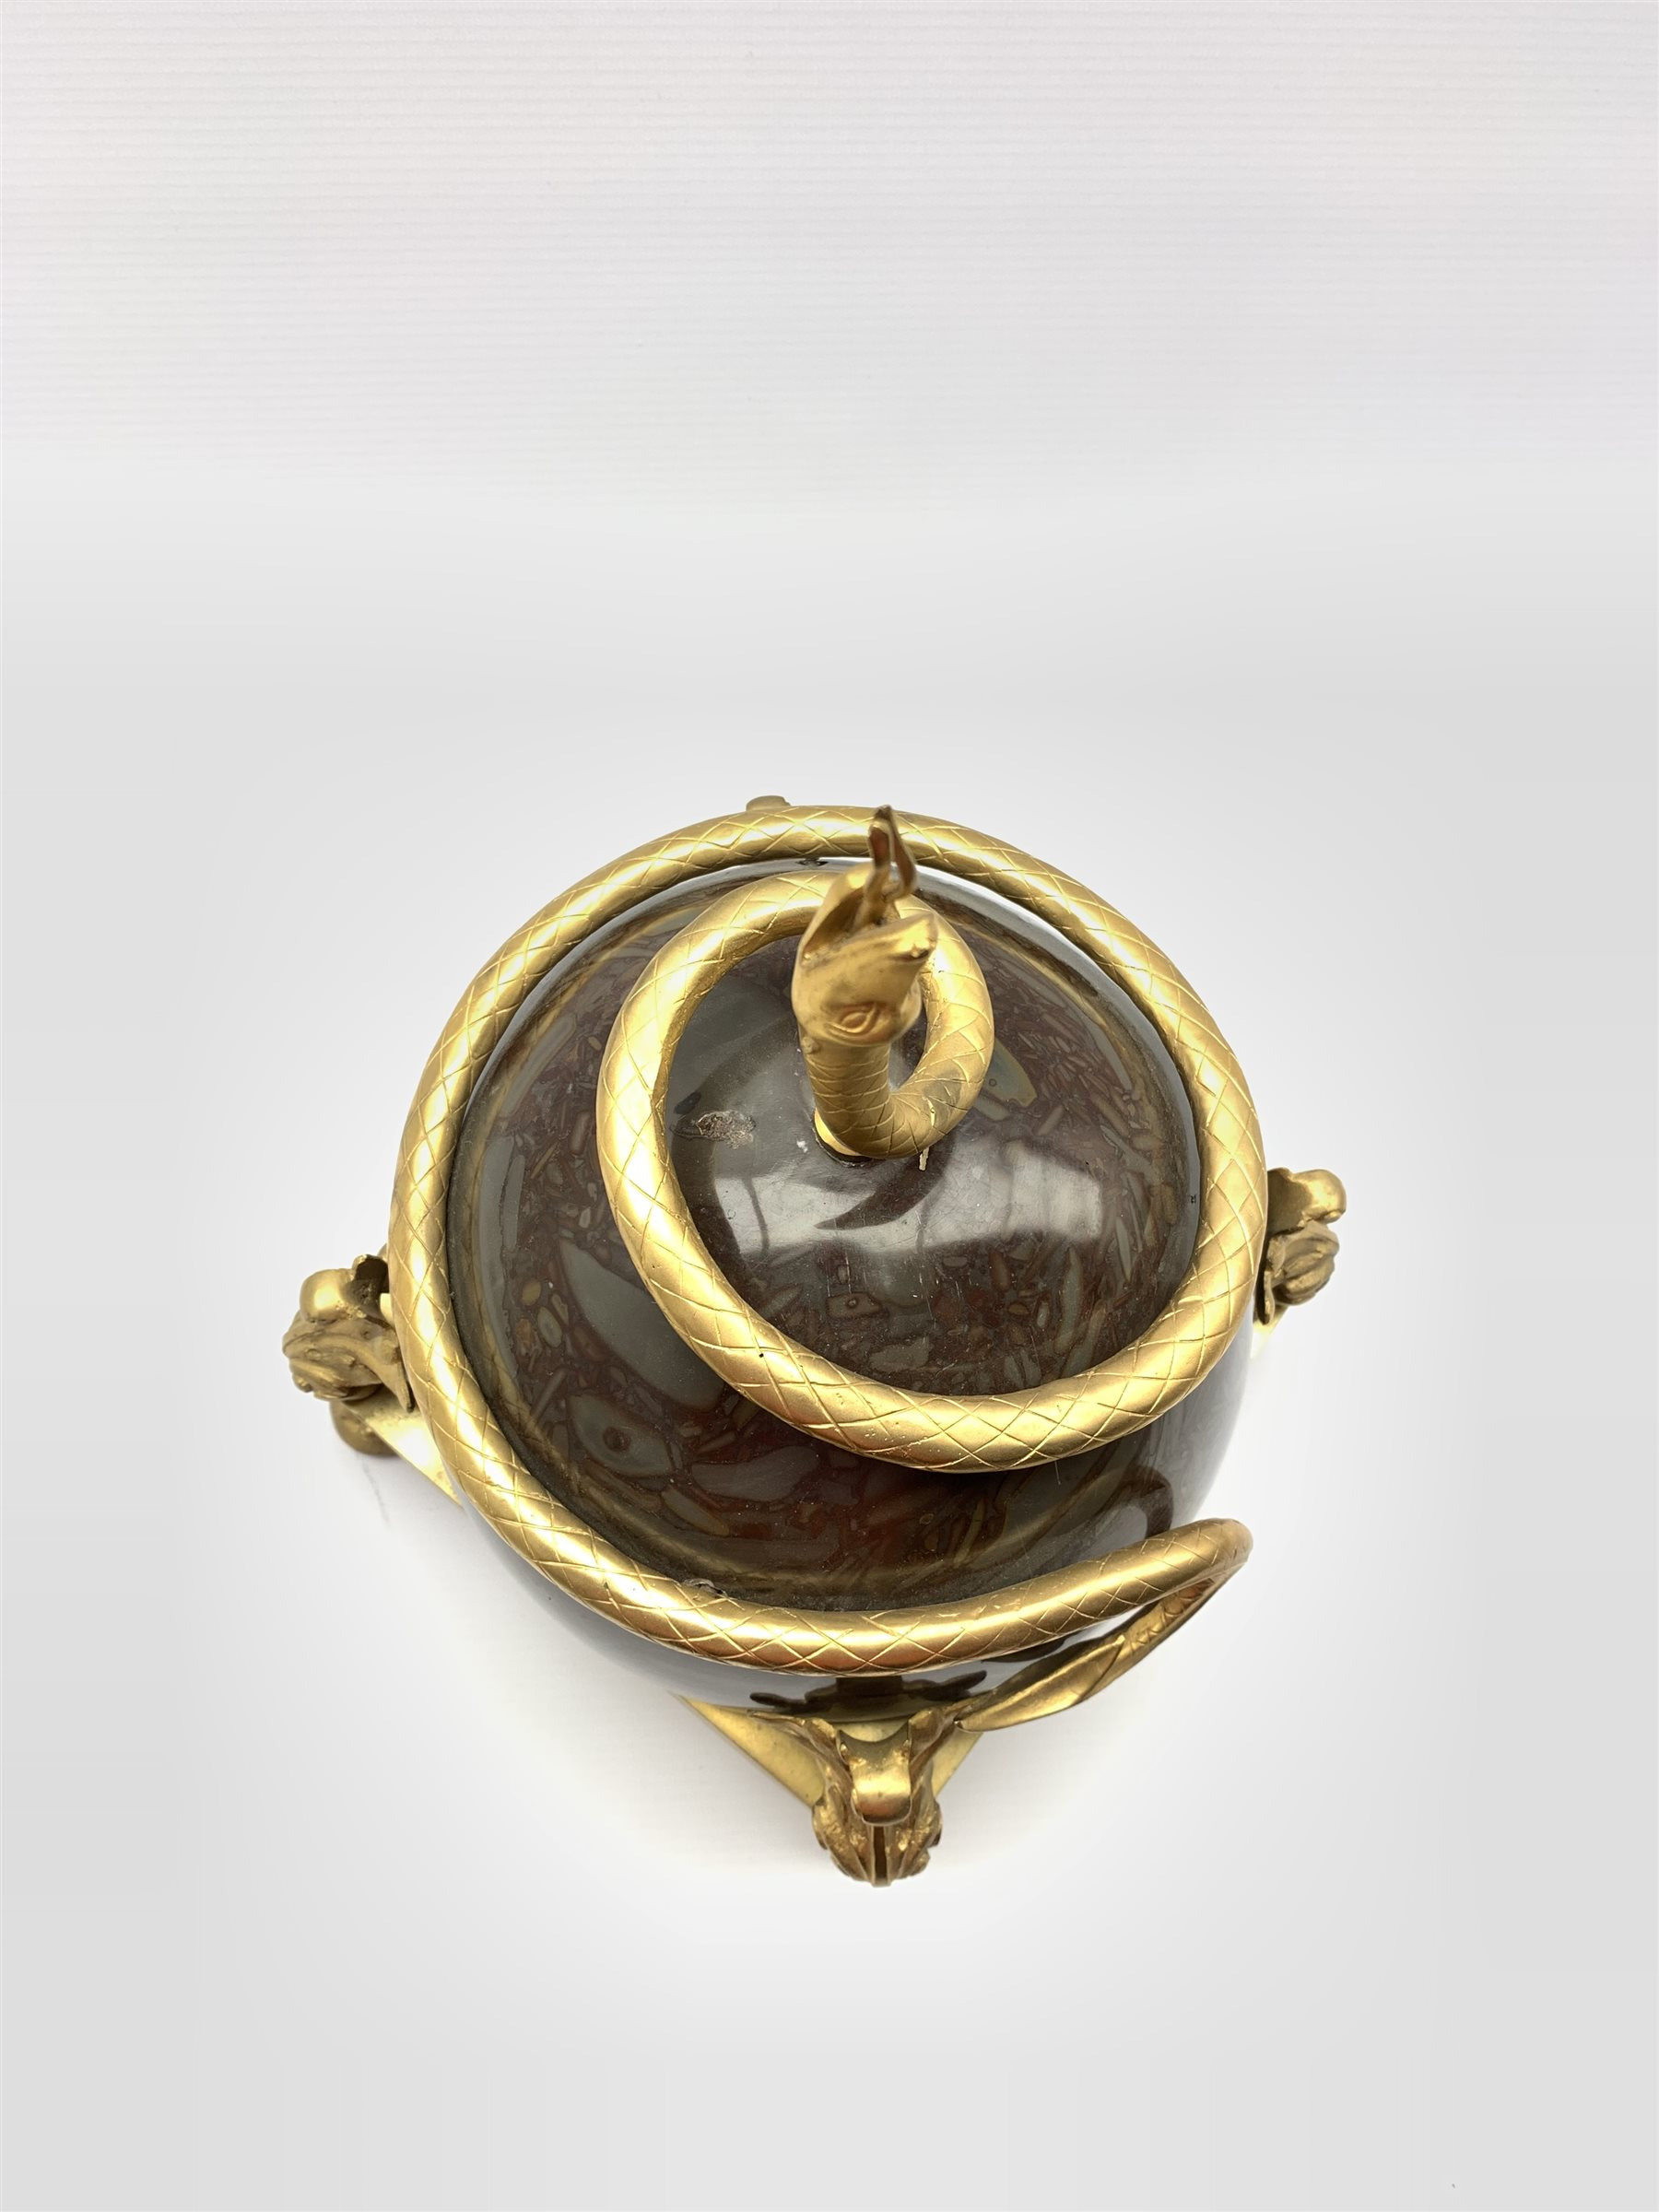 Veined green hardstone and gilt metal table centrepiece with a coiled serpent on a square base with - Image 2 of 5